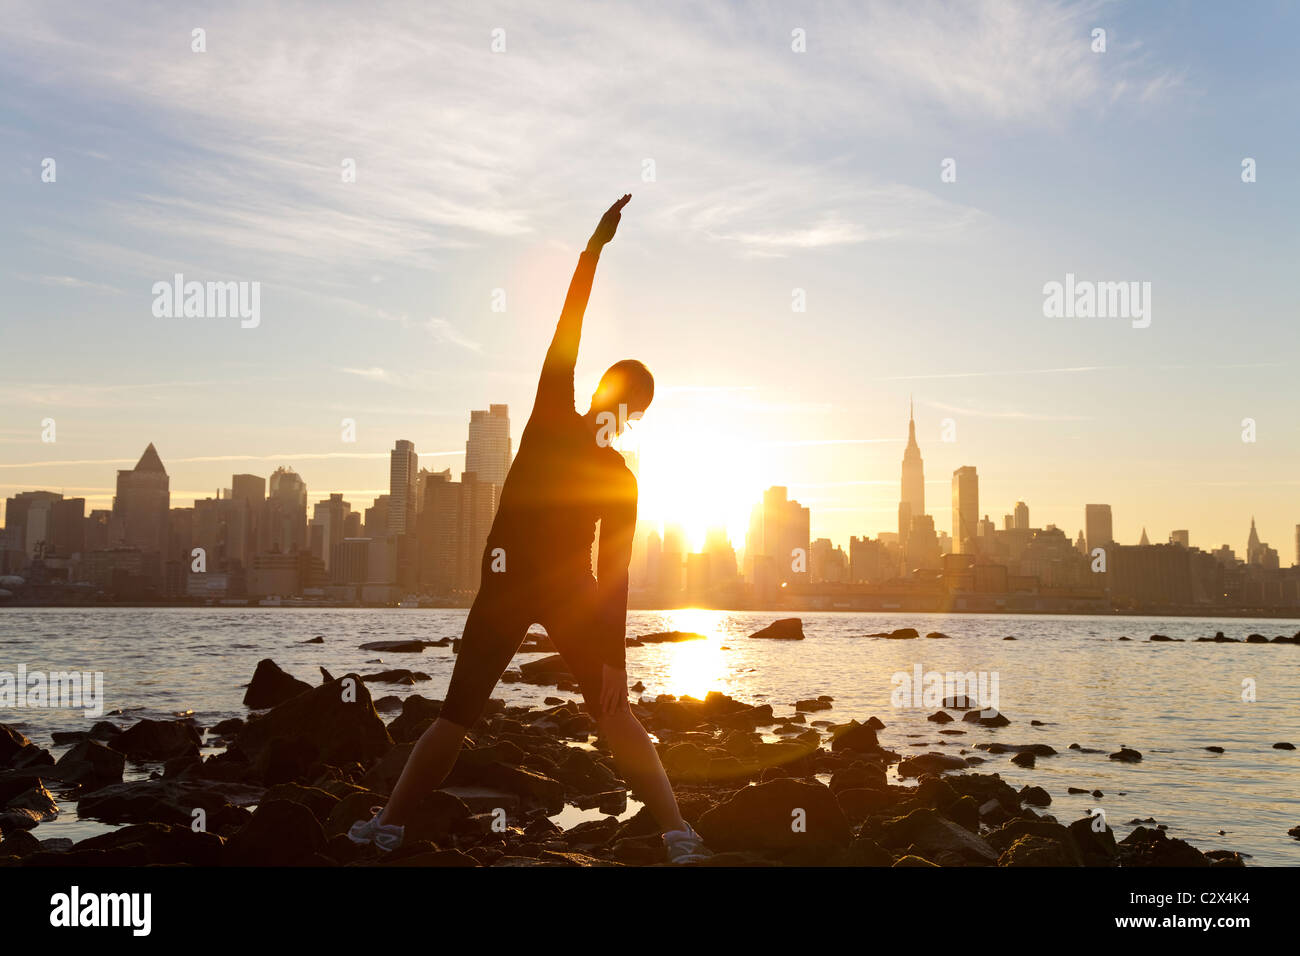 Una donna runner allungamento in una posizione di yoga nella parte anteriore dello skyline di Manhattan, New York City, Stati Uniti d'America, all'alba sunrise. Foto Stock